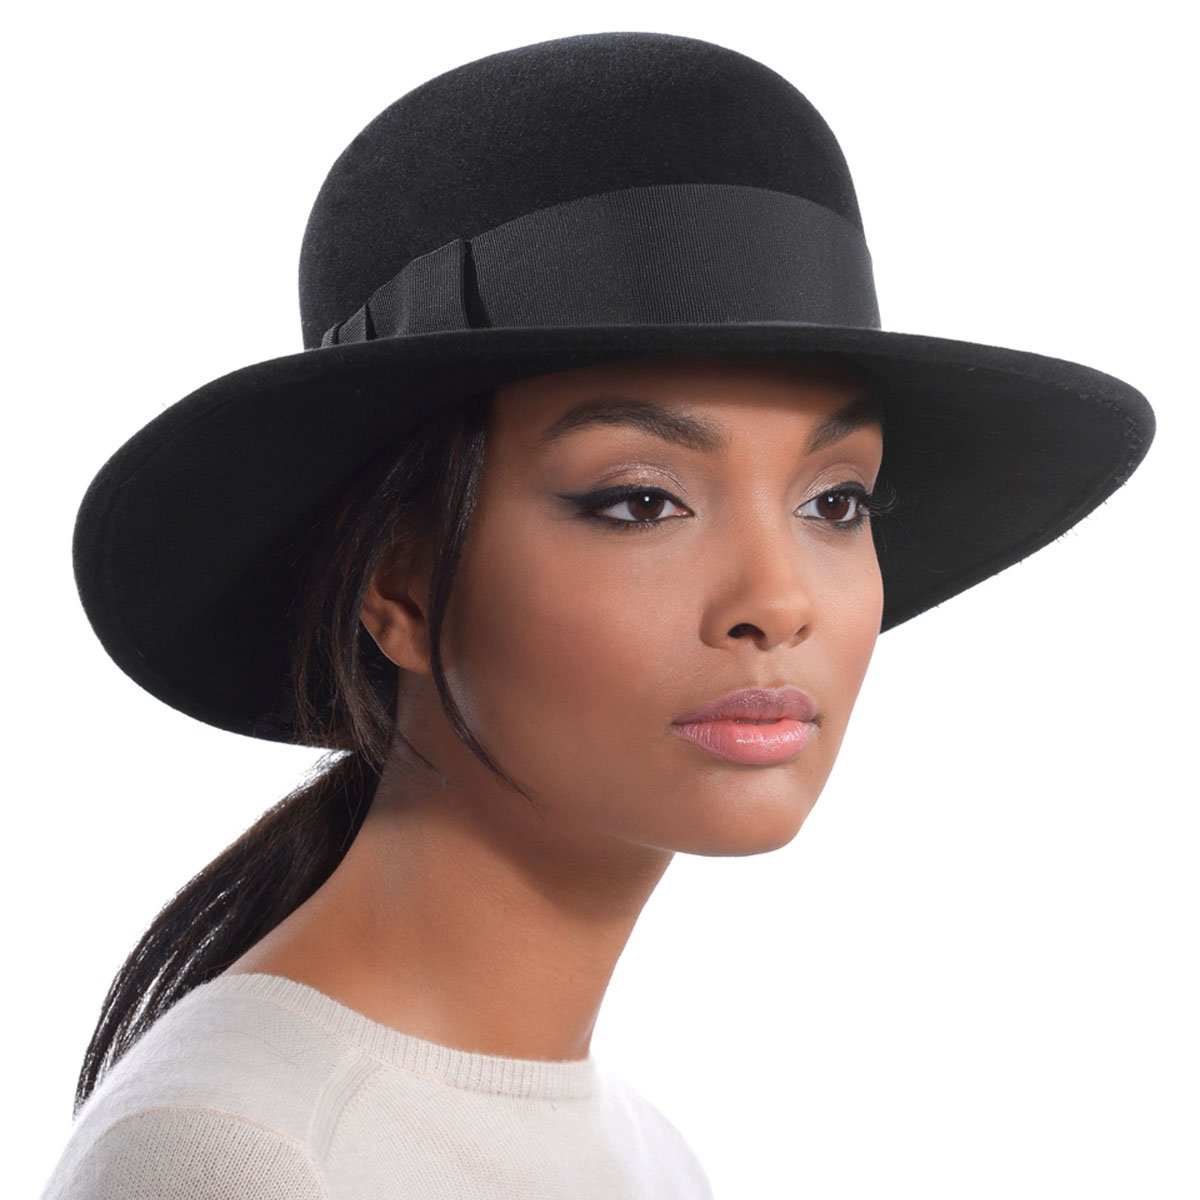 CDM product Eric Javits Luxury Fashion Designer Women's Headwear Hat - Padre - Black big image